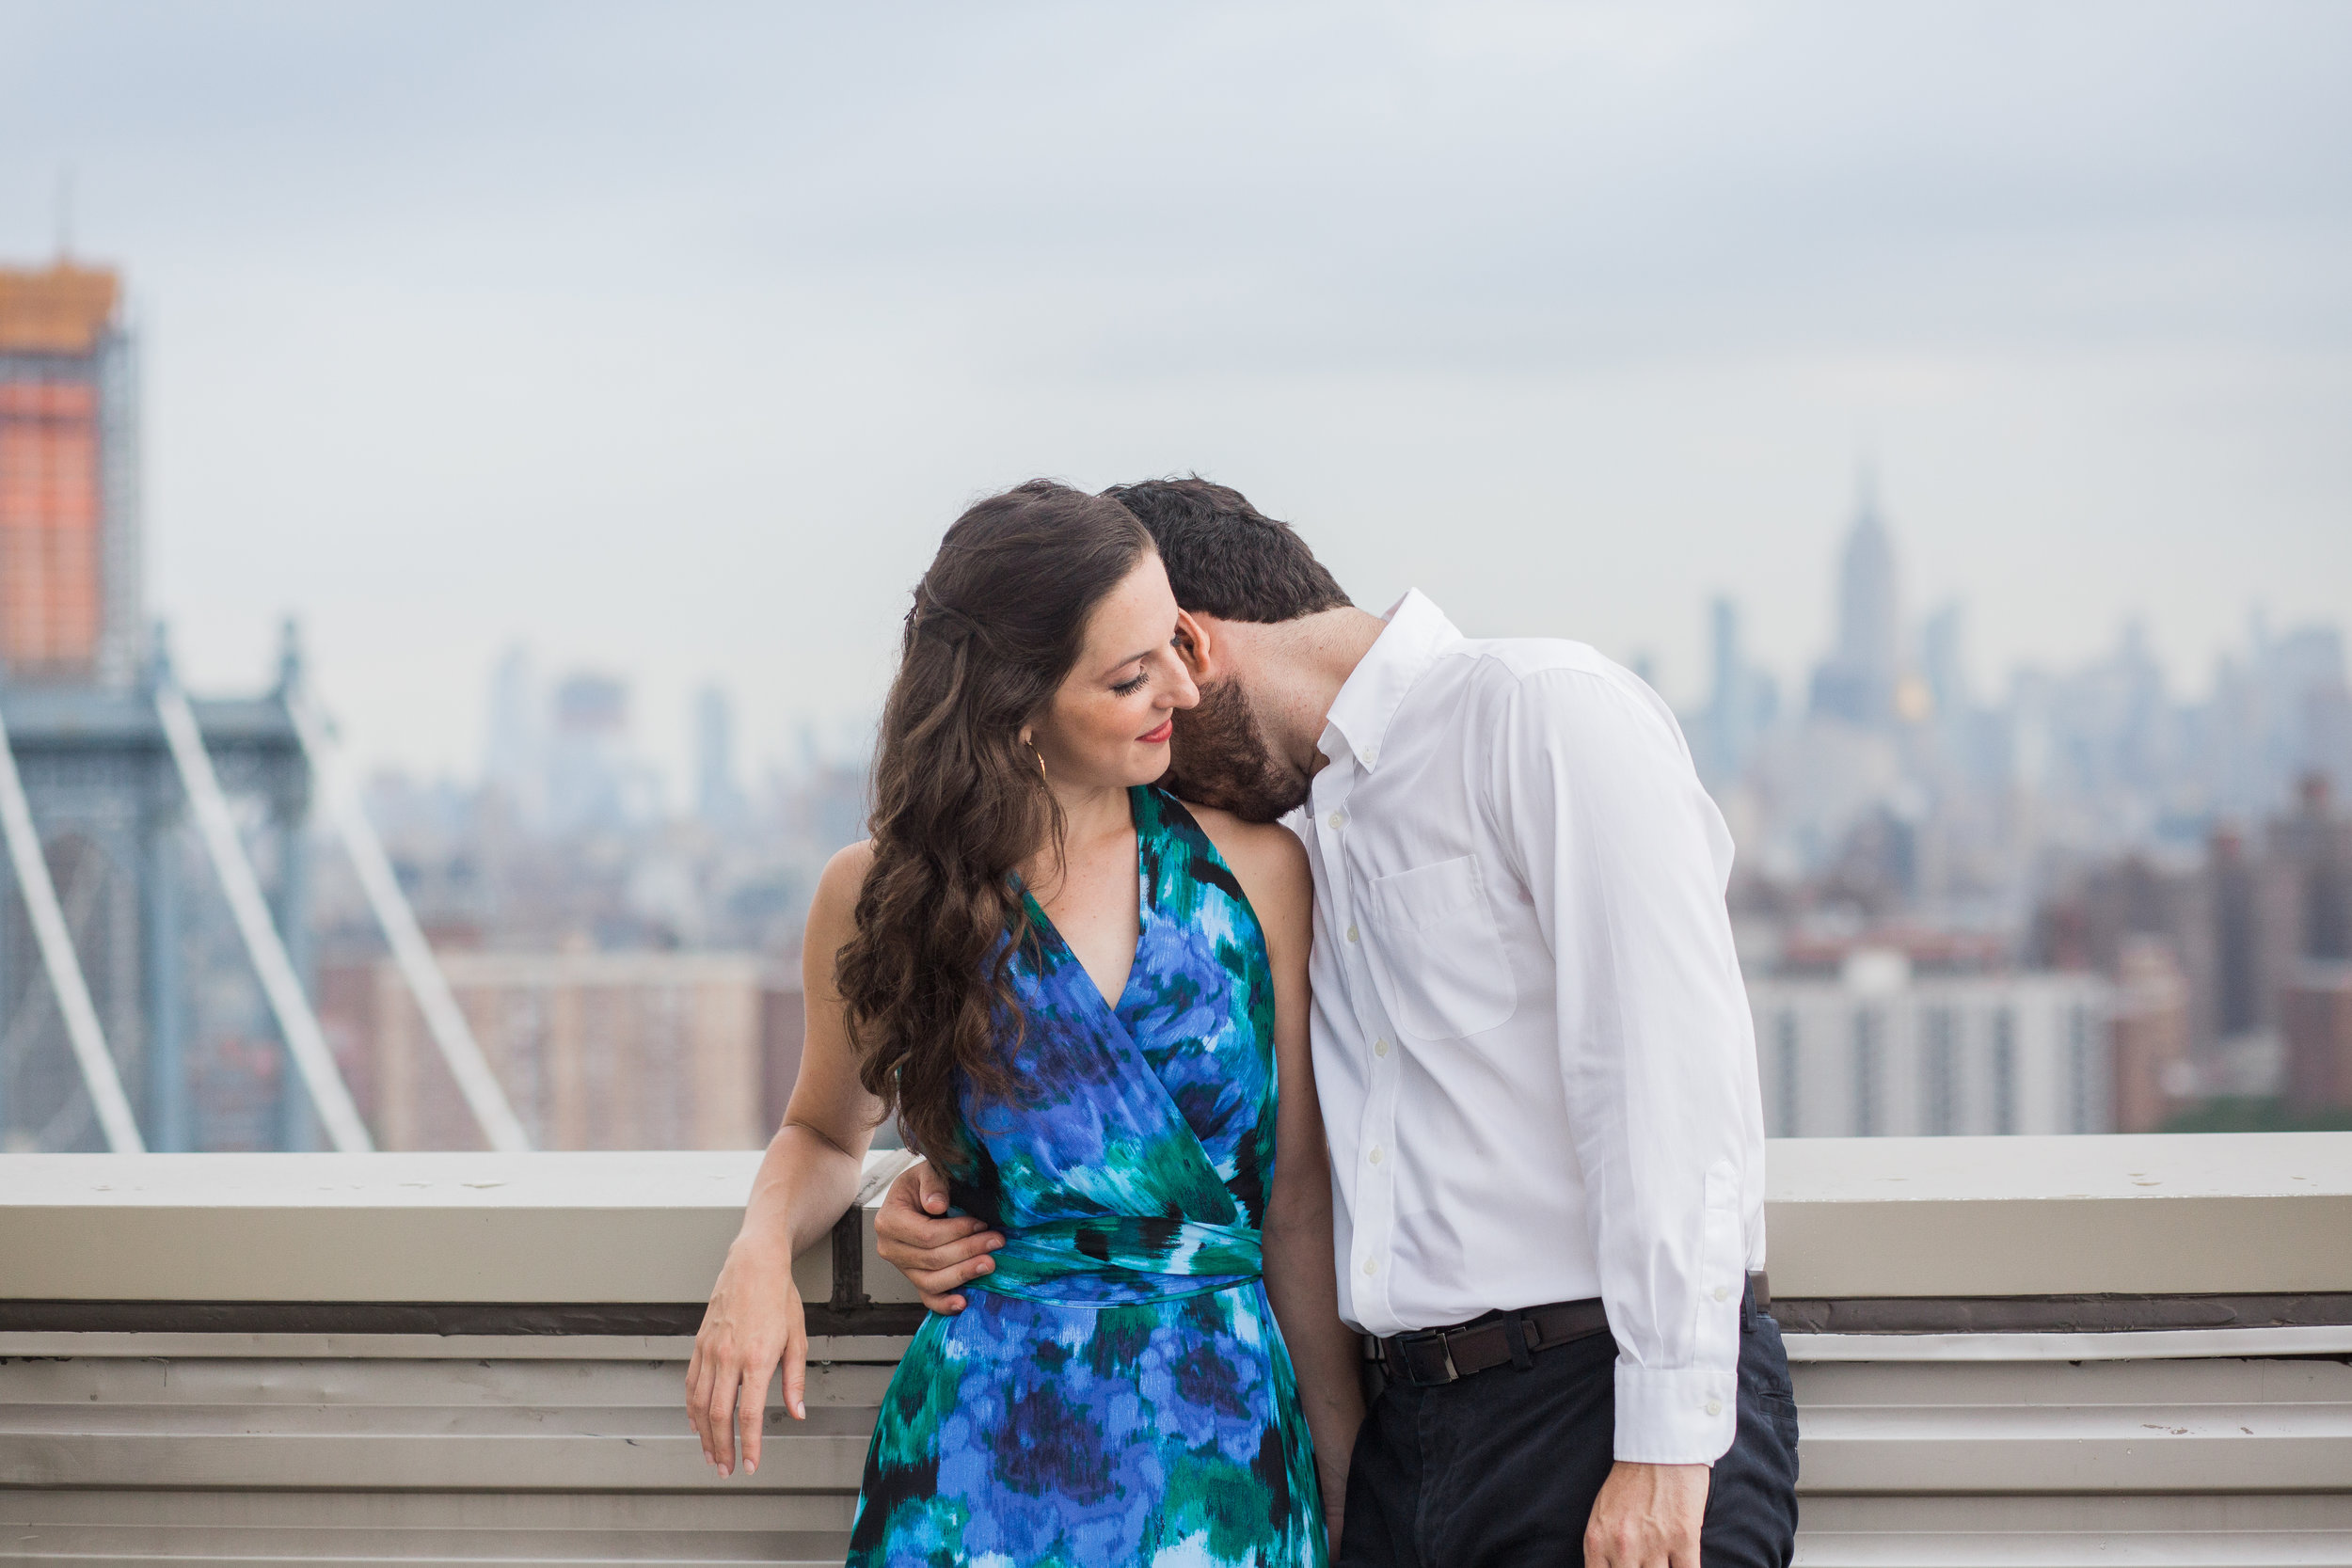 New York City Wedding Photographer - Krista Turner Photography - NYC Elopement Photographers (175 of 272).JPG